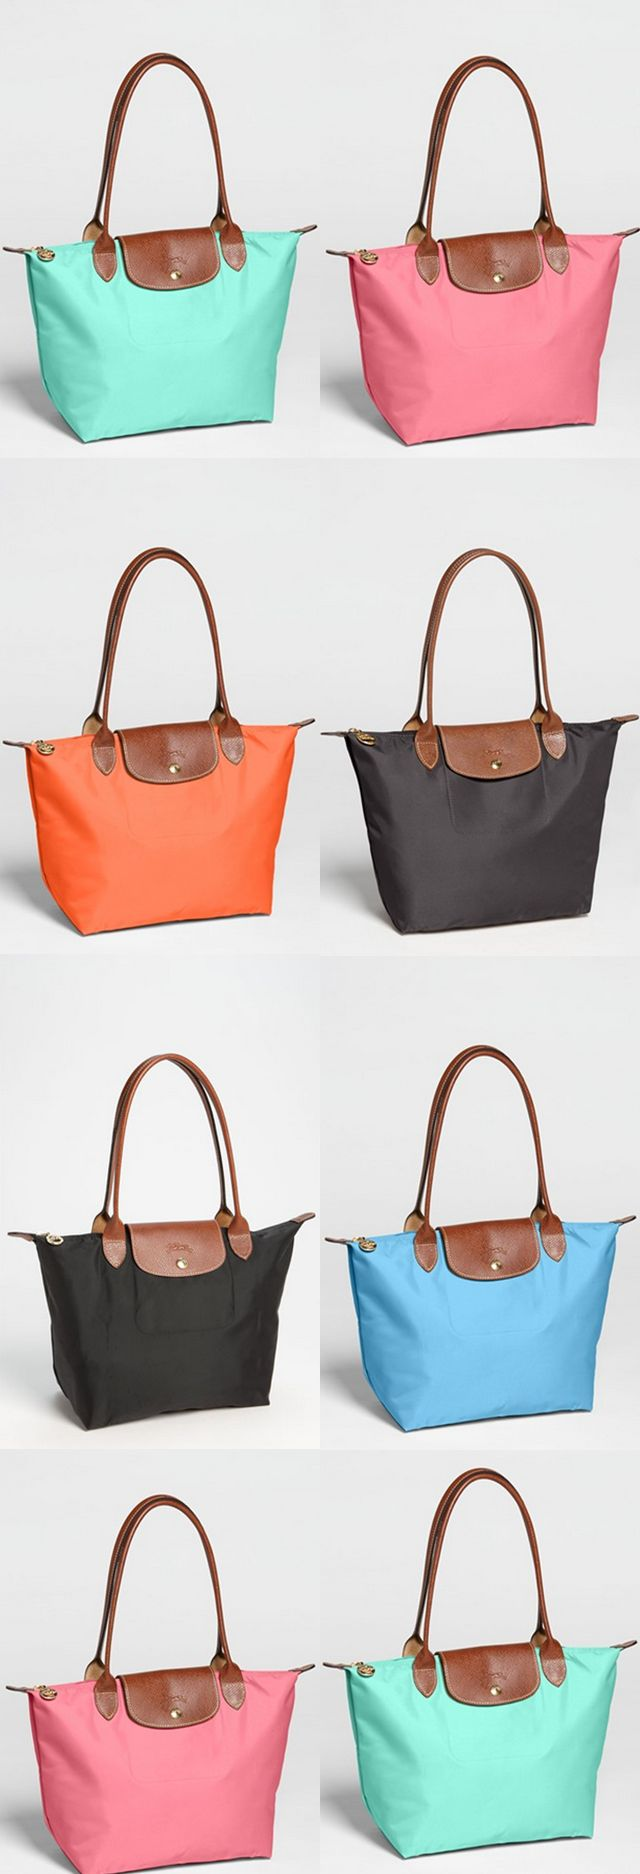 Colorful totes. I'll take one in each color, please! love my longchamps